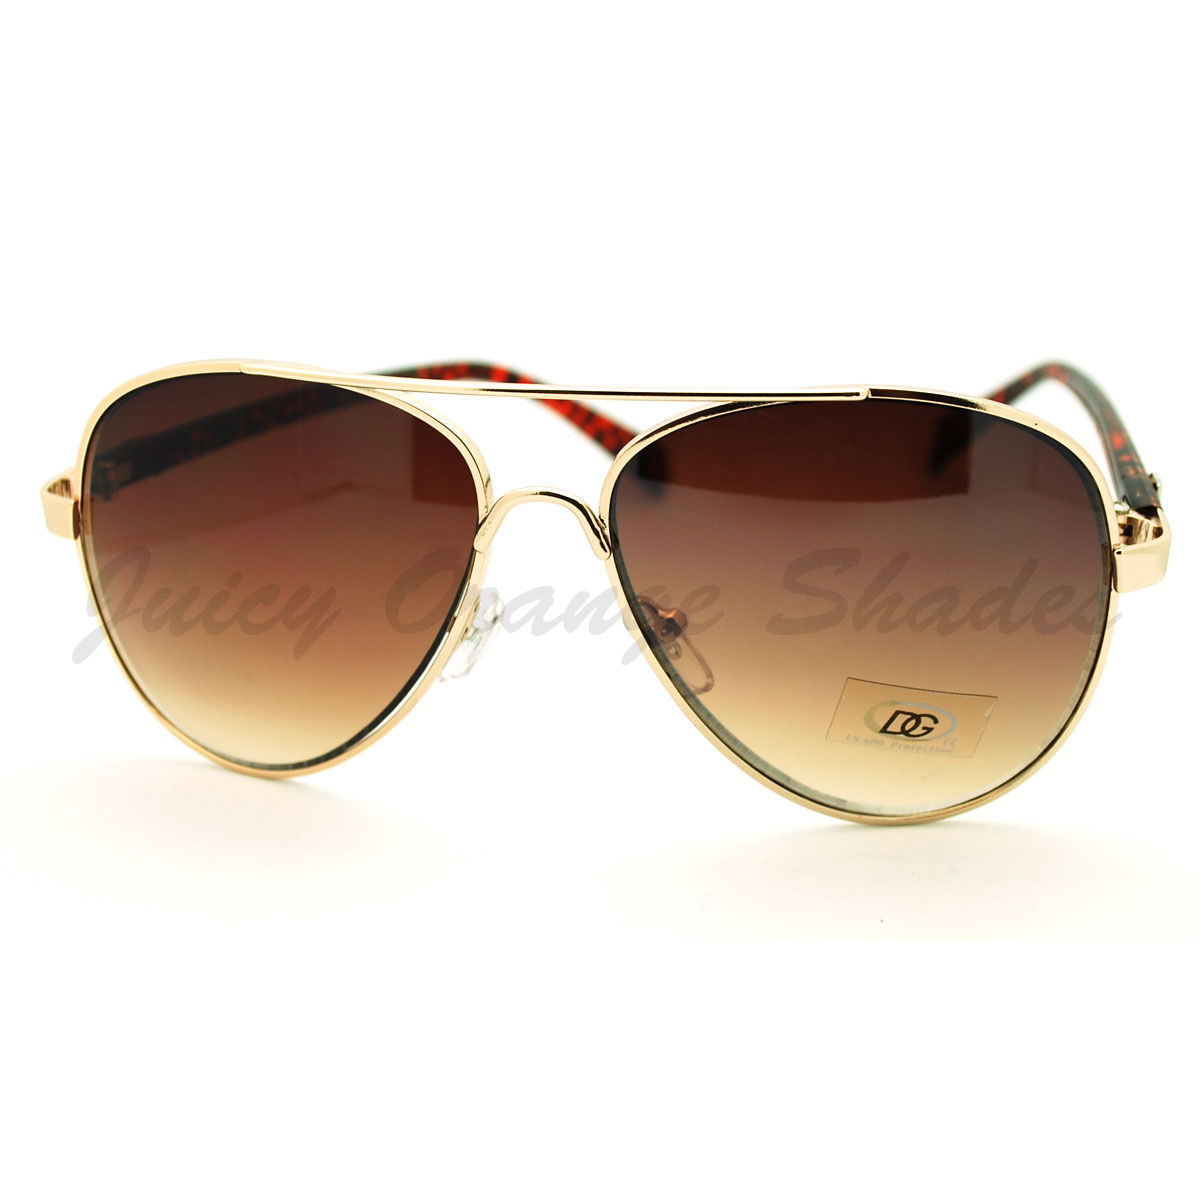 Womens Classic Aviator Sunglasses with Colorful Animal Prints